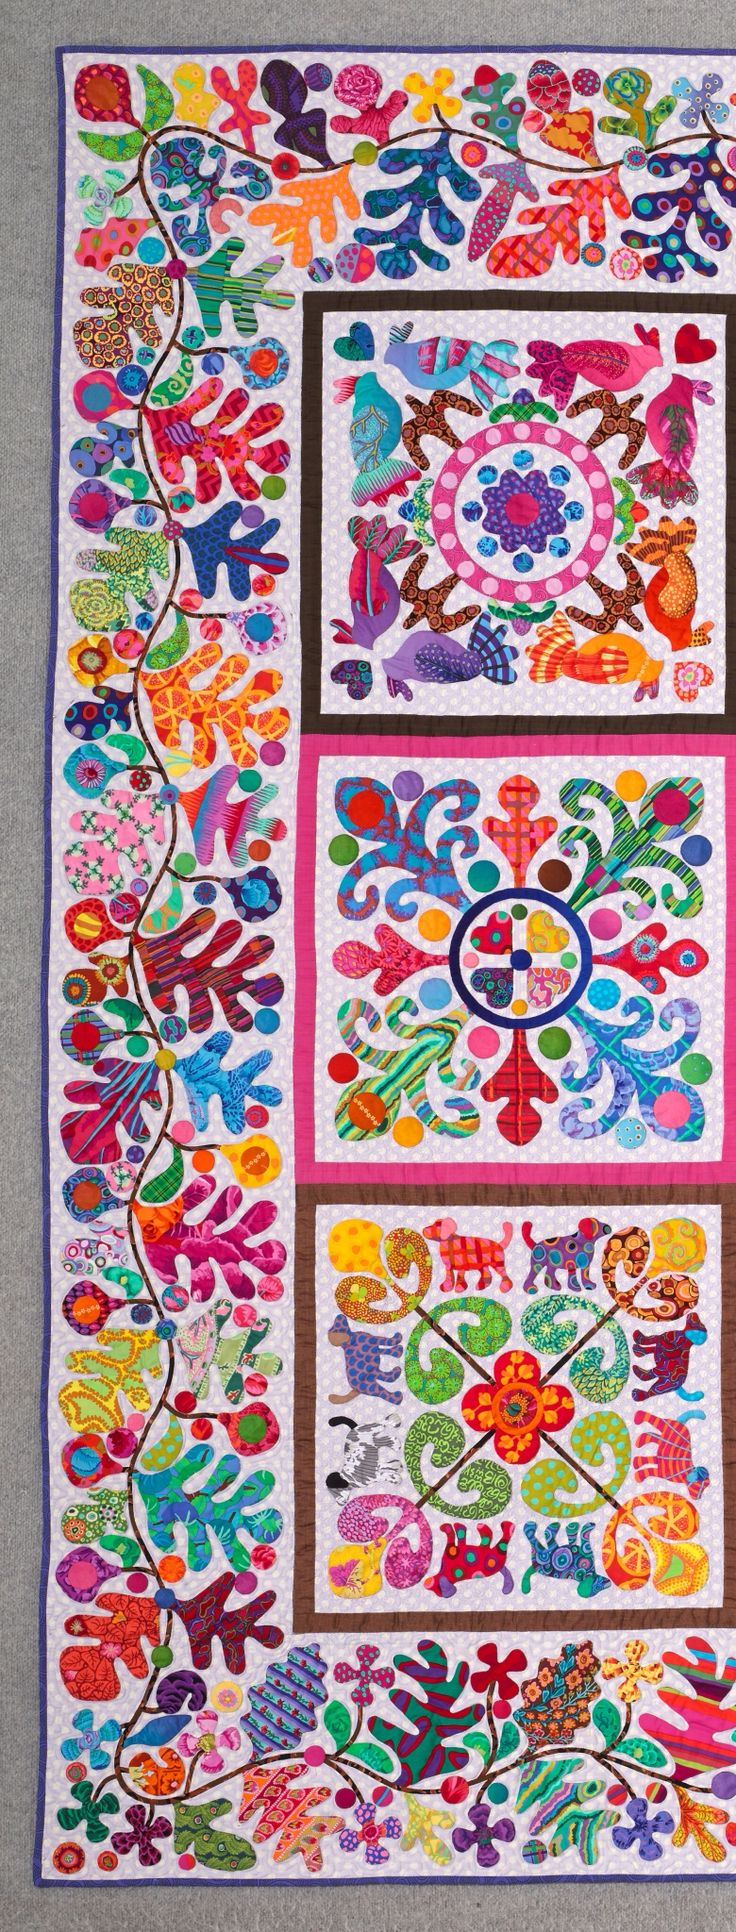 2220 best Quilts I like images on Pinterest | Bedspreads, Pointe ...